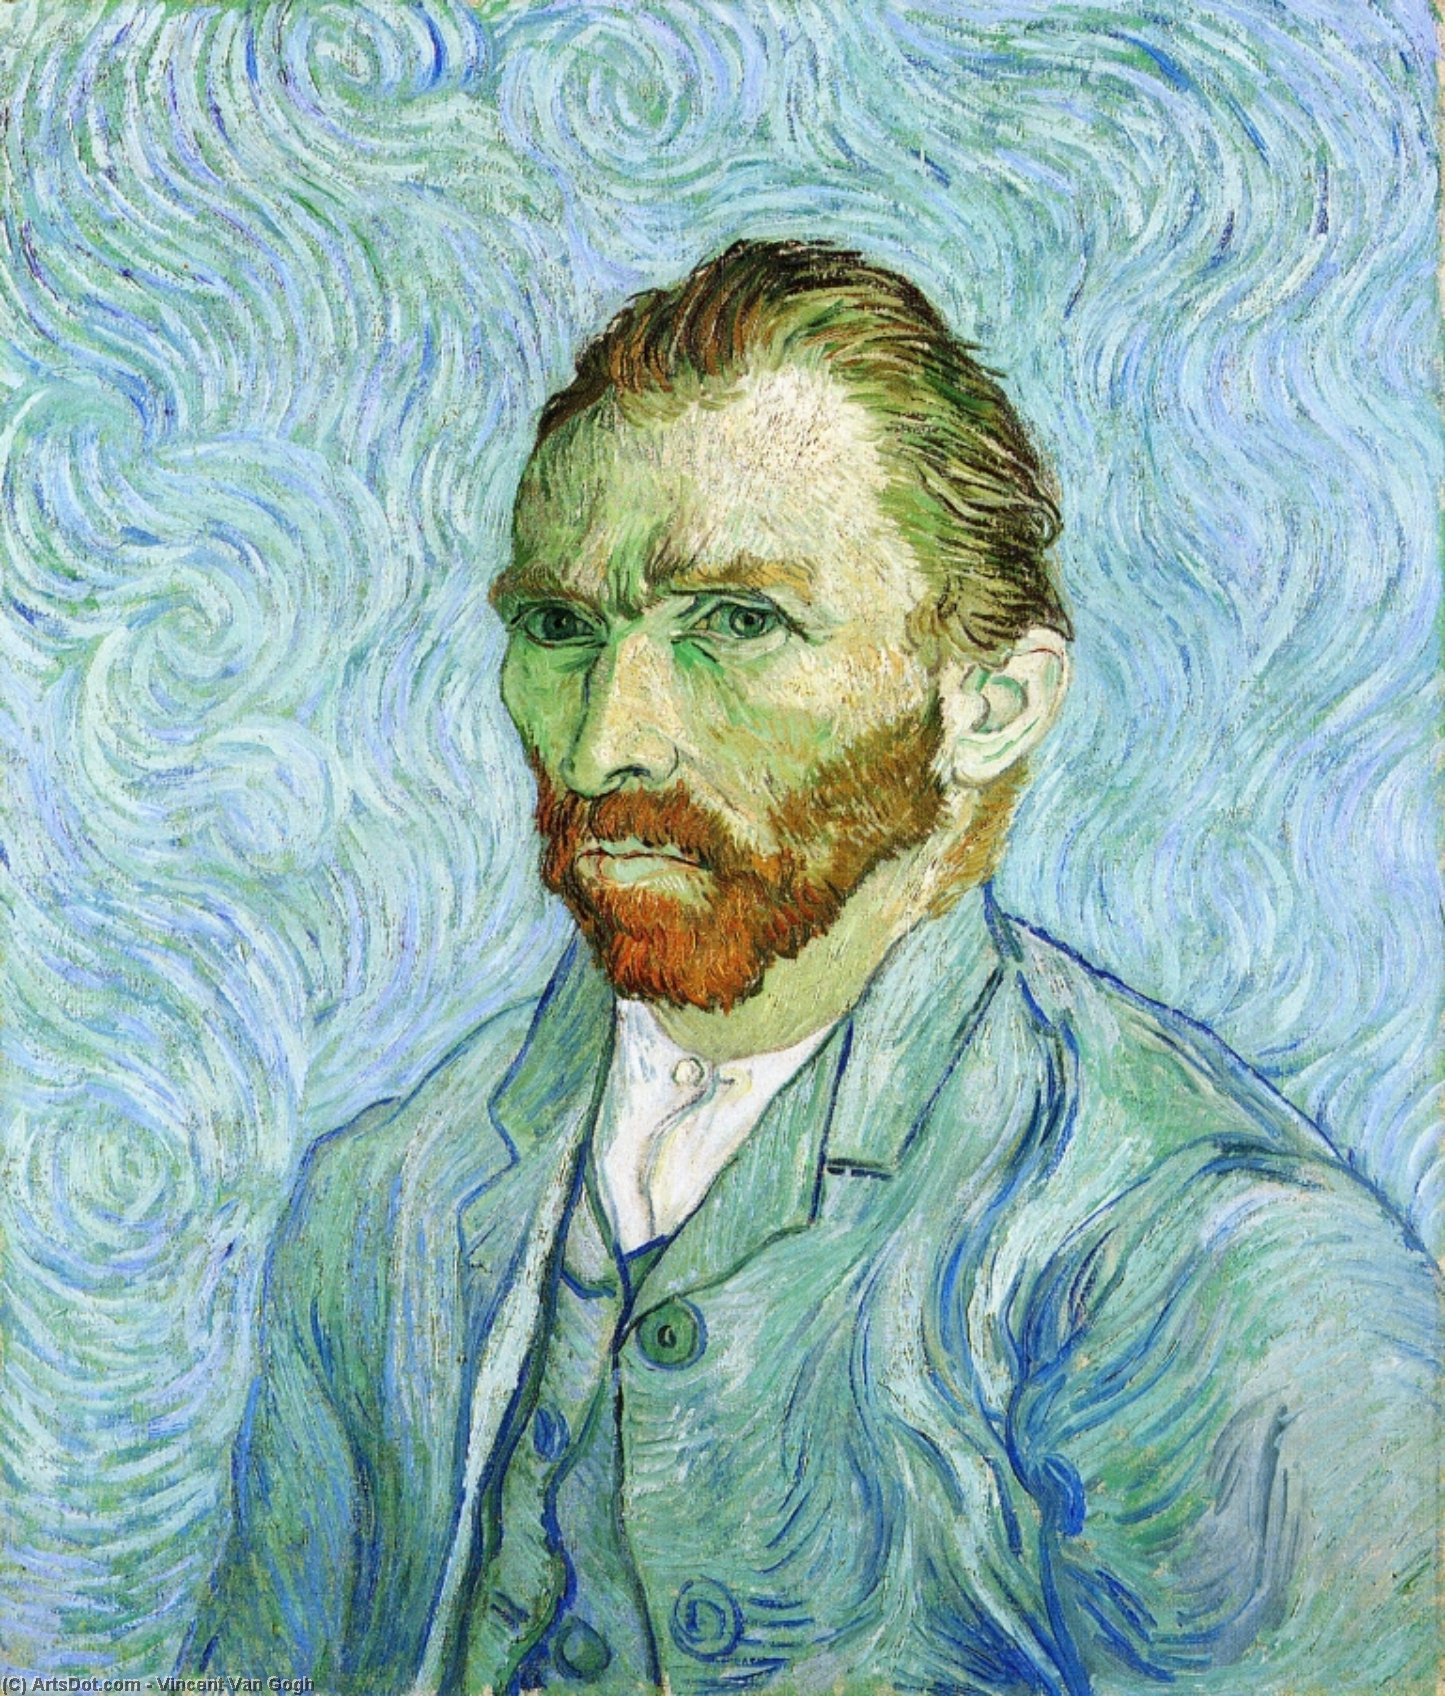 Wikioo.org - The Encyclopedia of Fine Arts - Painting, Artwork by Vincent Van Gogh - Self Portrait